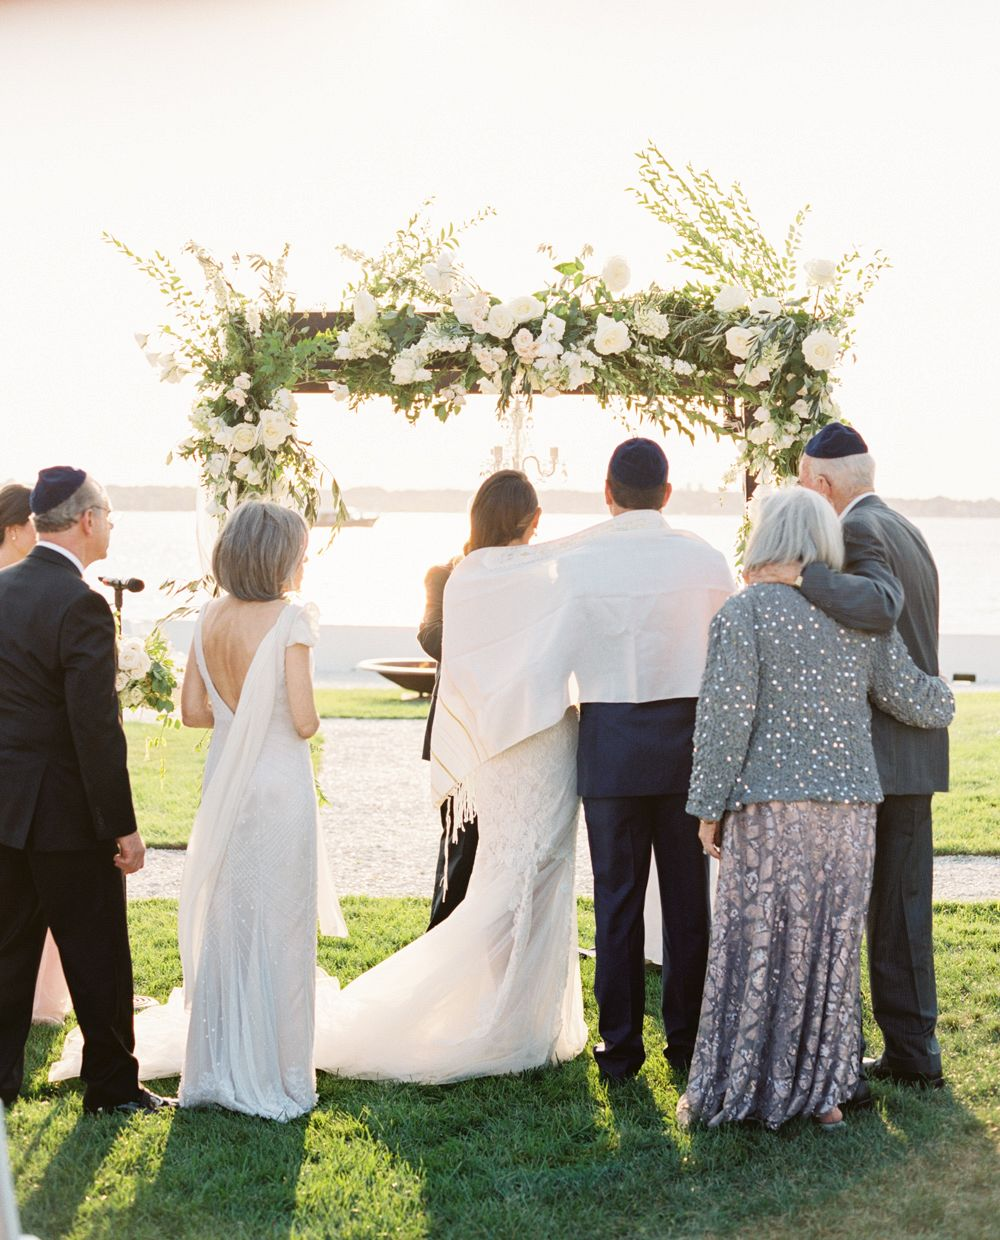 Brynne and scotts rustic nautical wedding at belle mer by rebecca brynne and scotts rustic nautical wedding at belle mer junglespirit Gallery